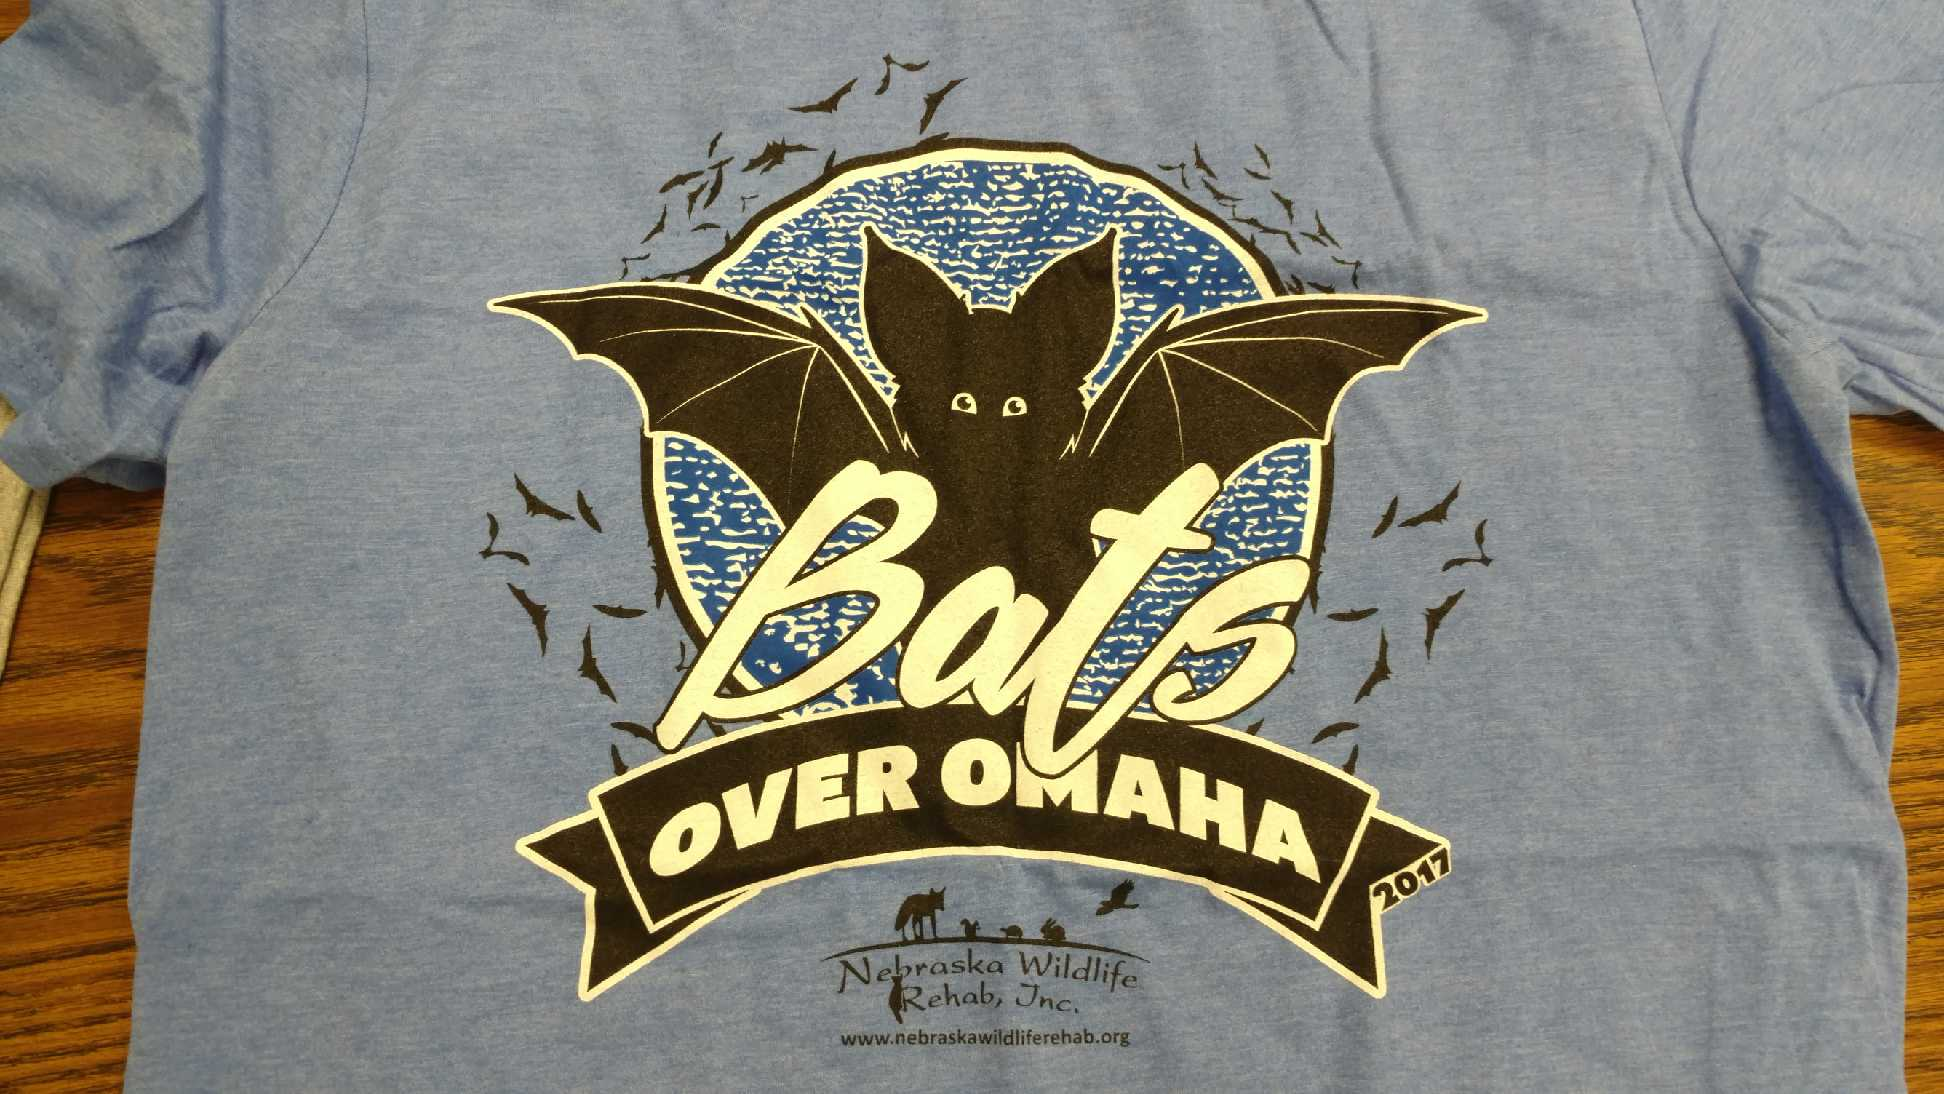 Bats Over Omaha Bat Release T-Shirt - 2017: Adult Medium, Heather Blue